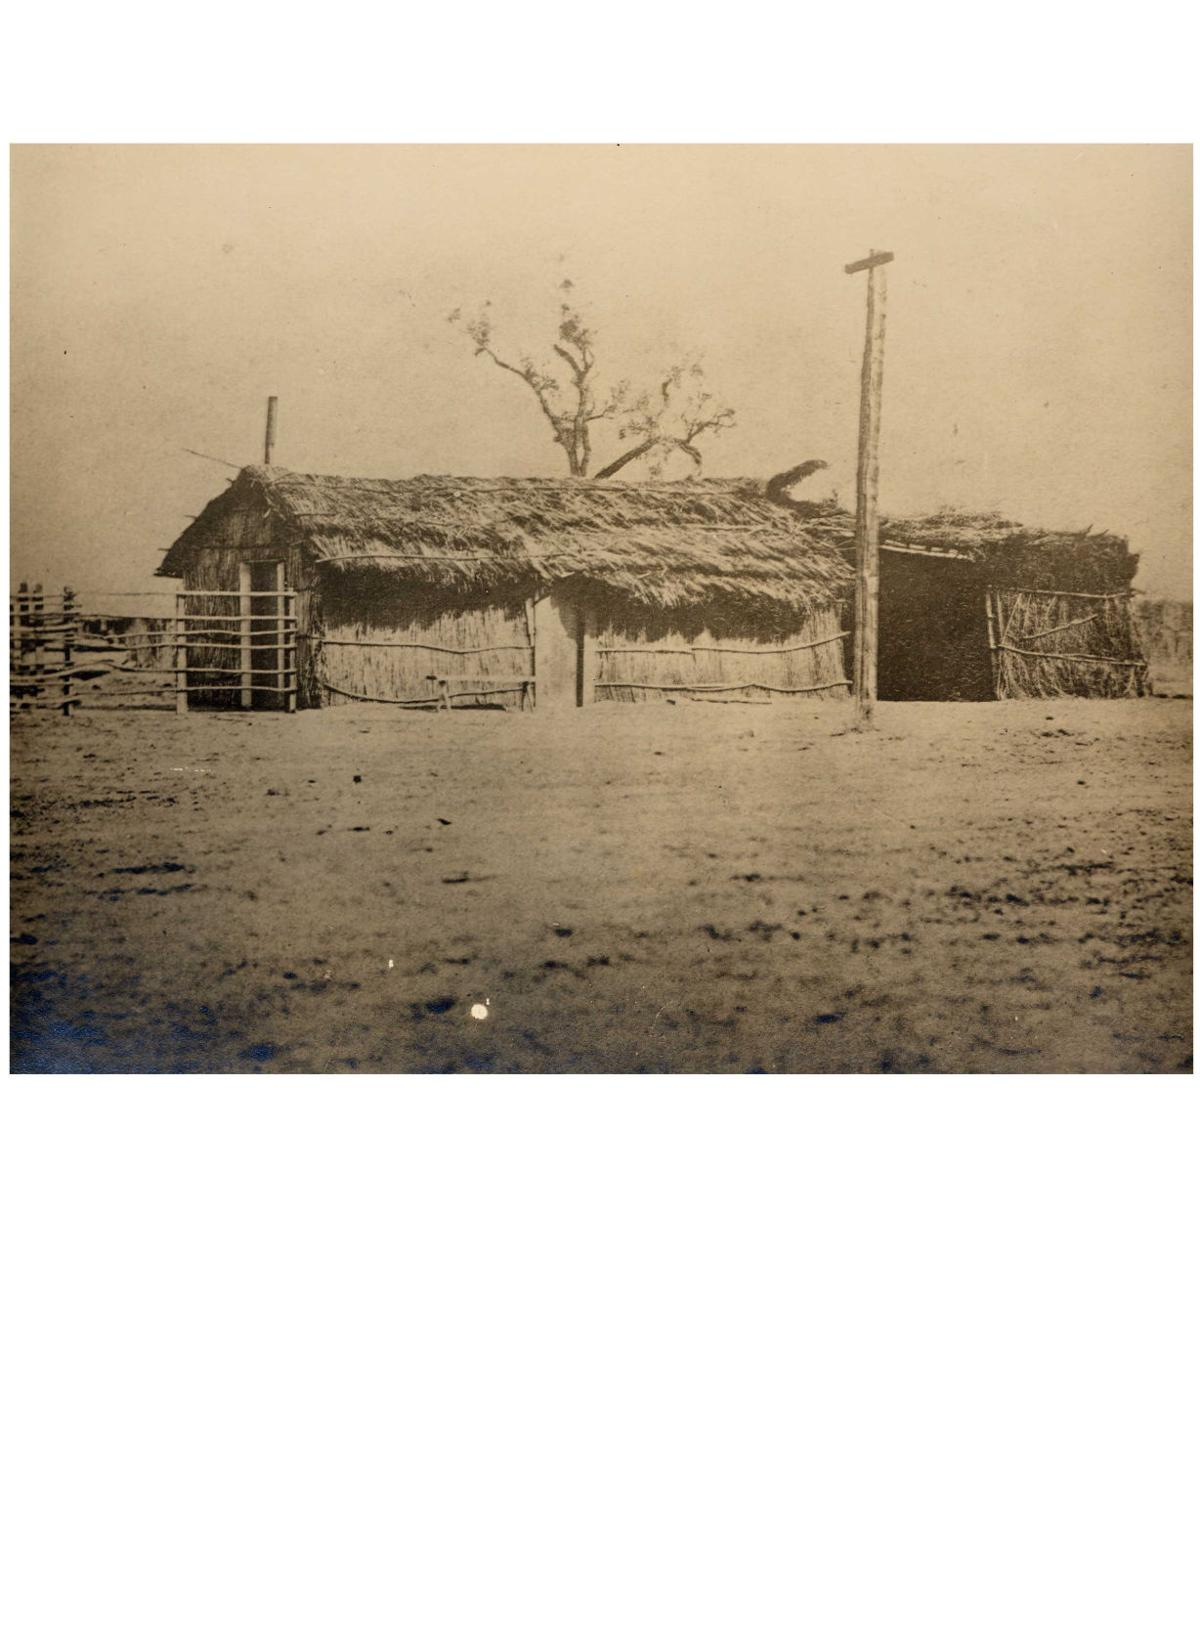 1st house in Bakersfield